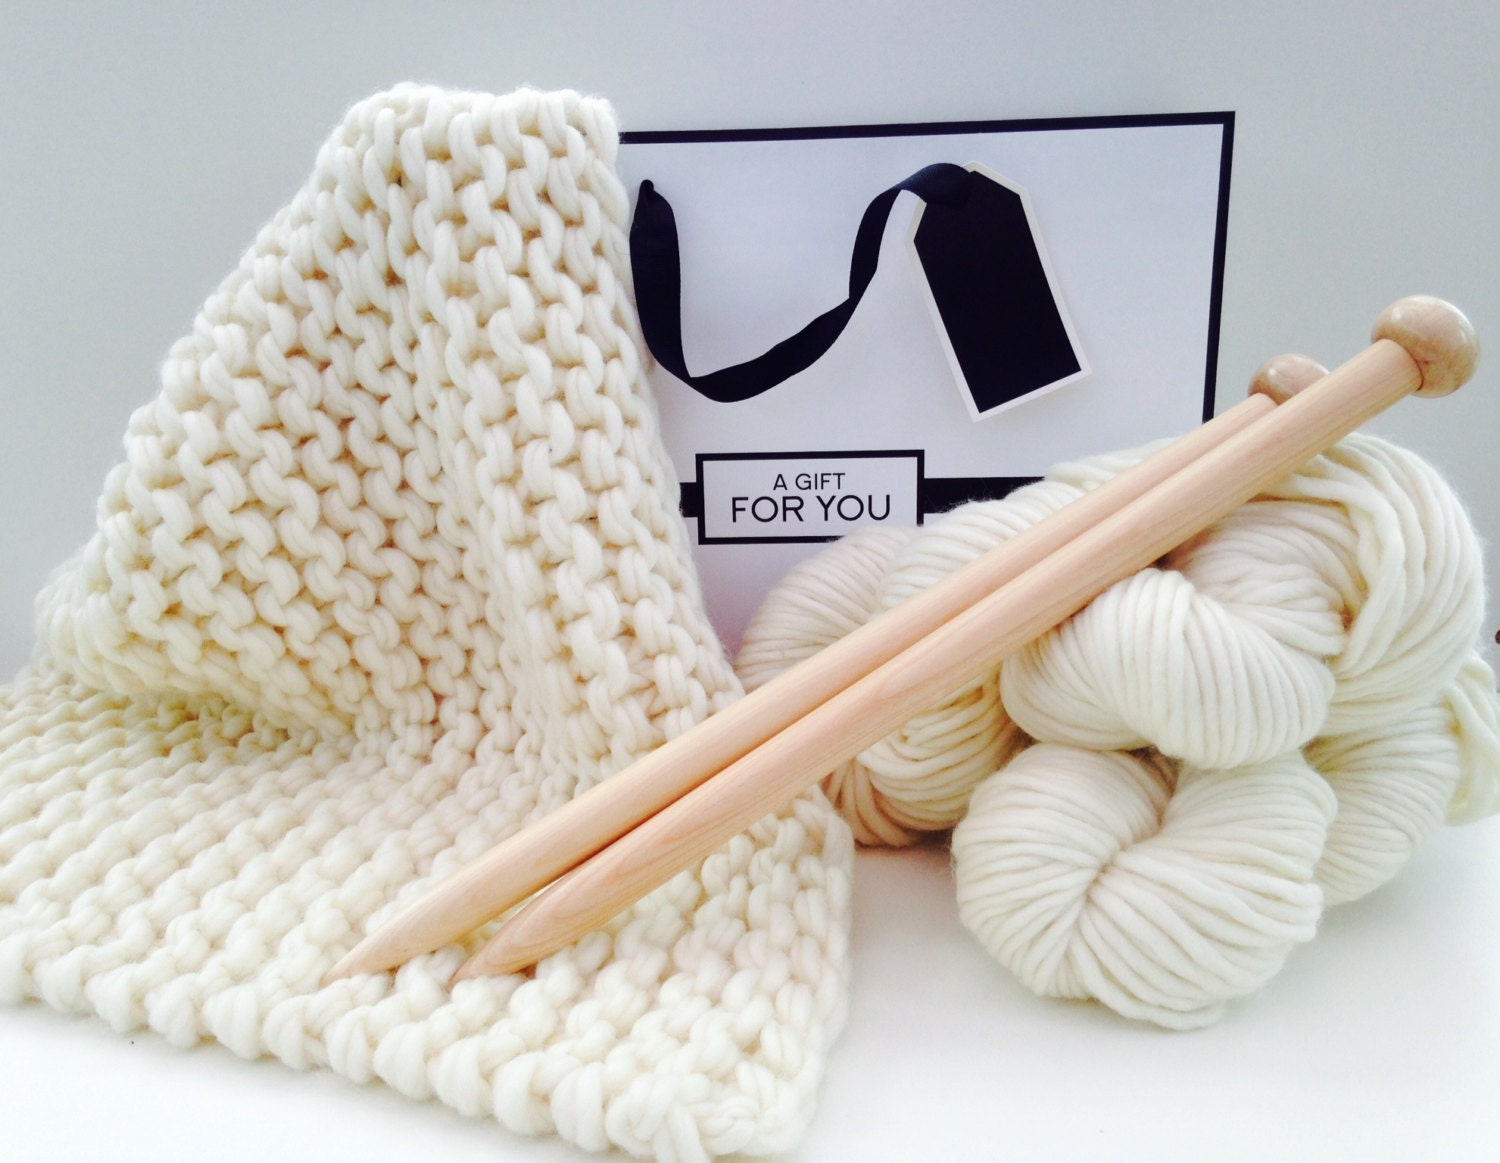 Knitting Patterns Kits : DIY Knitting kit Luxury Baby Blanket. DIY knit kit Learn to